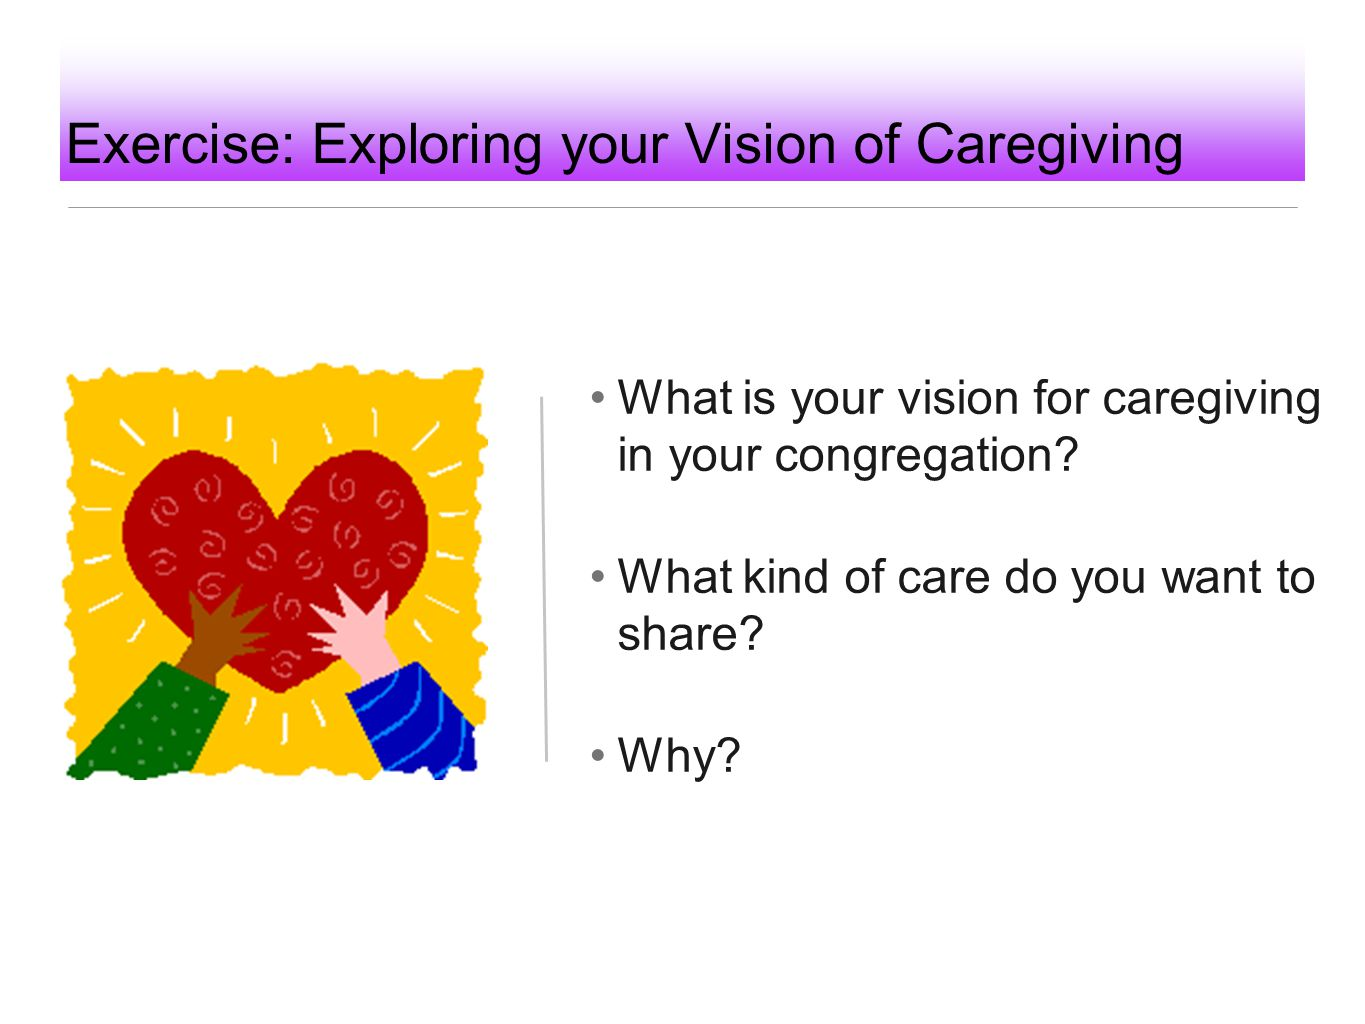 Exercise: Exploring your Vision of Caregiving What is your vision for caregiving in your congregation? What kind of care do you want to share? Why?